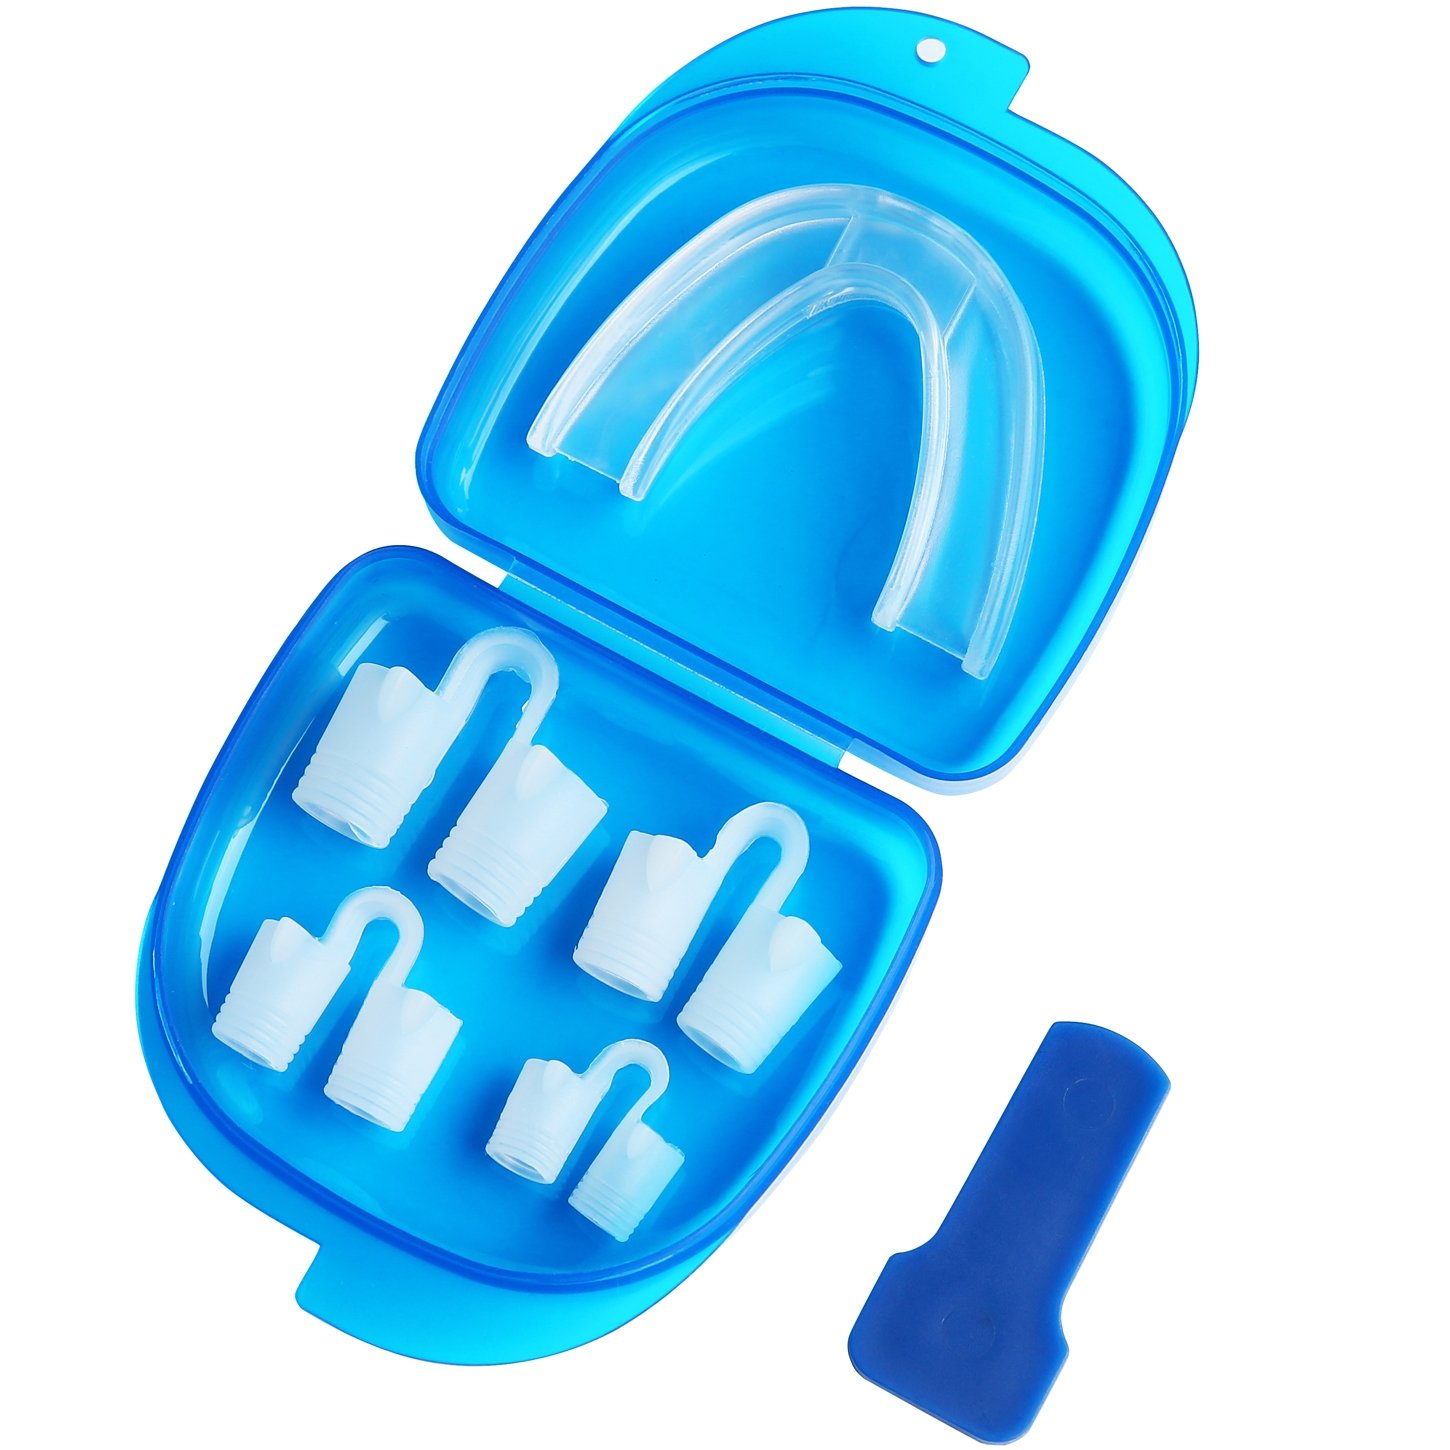 Anti Snoring Kit Dentist-Approved Mouthpiece + Nose Vents | Night Mouth Guard | Snore Stopper Solution Sleep Apnea Bruxism Sleep Aid| Prevent Snoring Teeth Grinding Clenching Mouth Guards Better Sleep